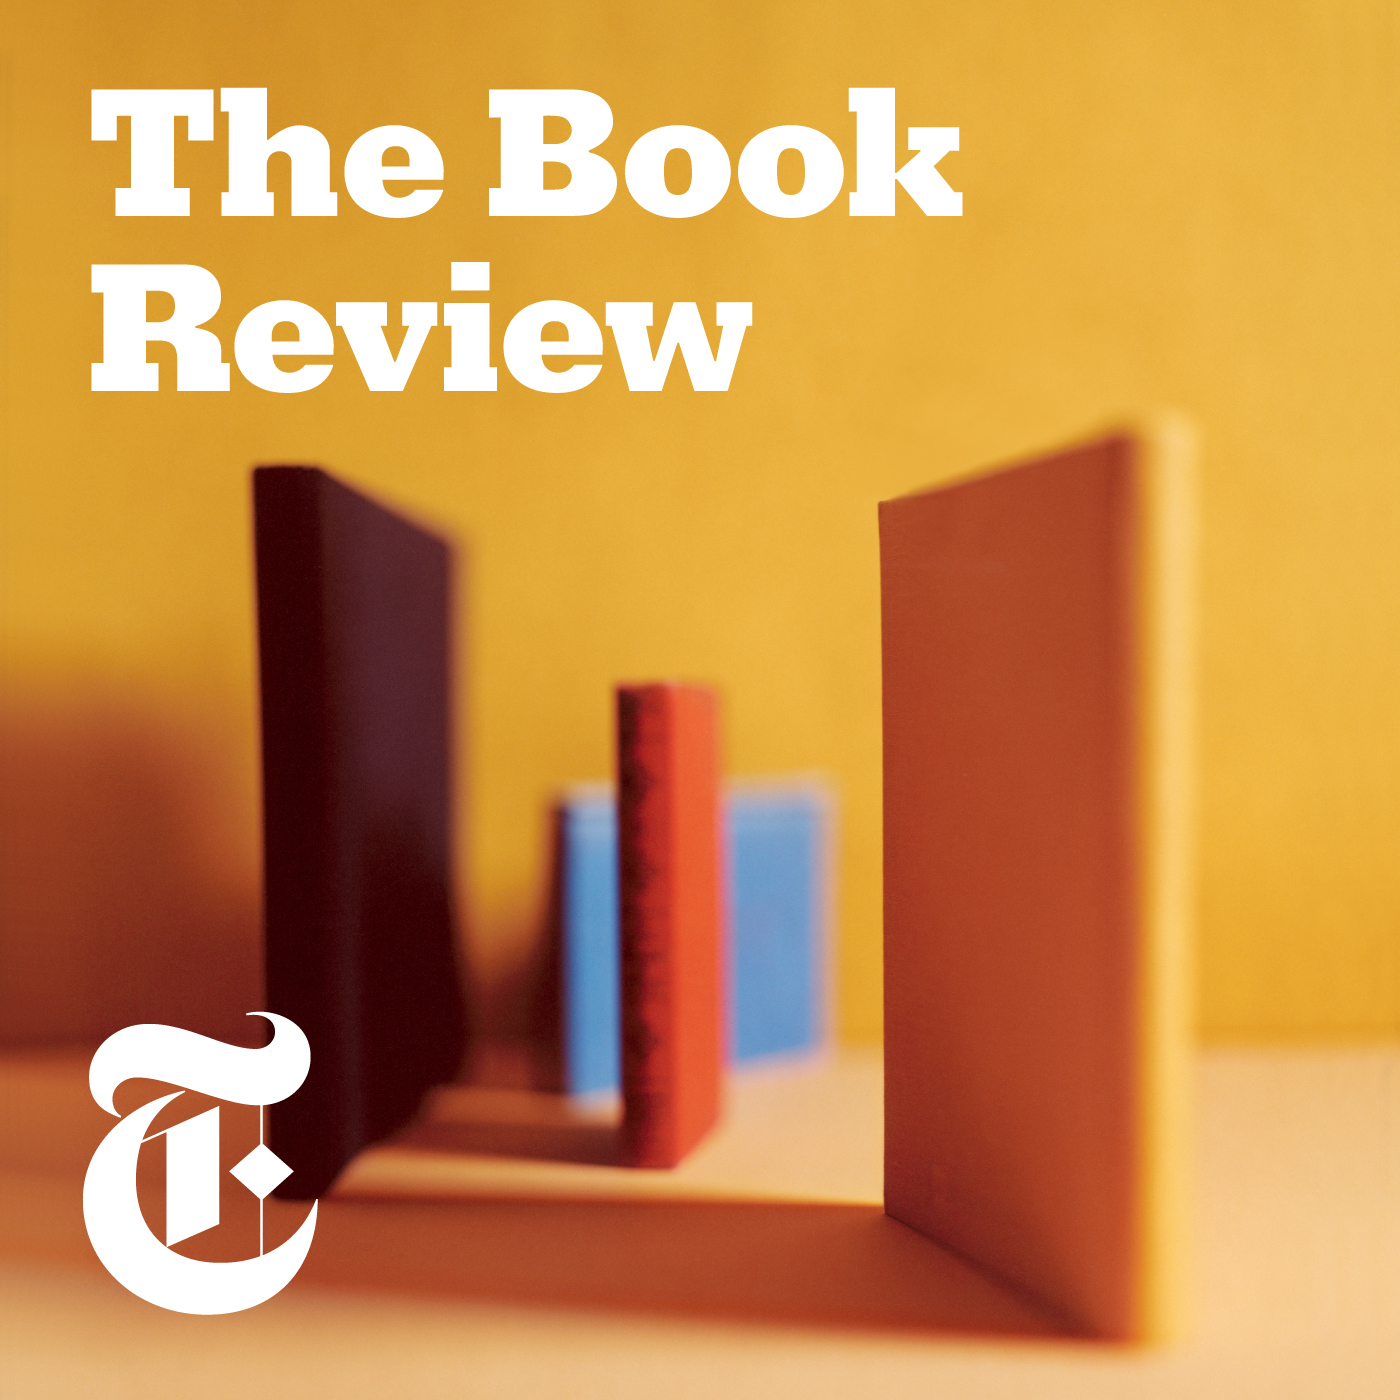 The Book Review by The New York Times podcast logo